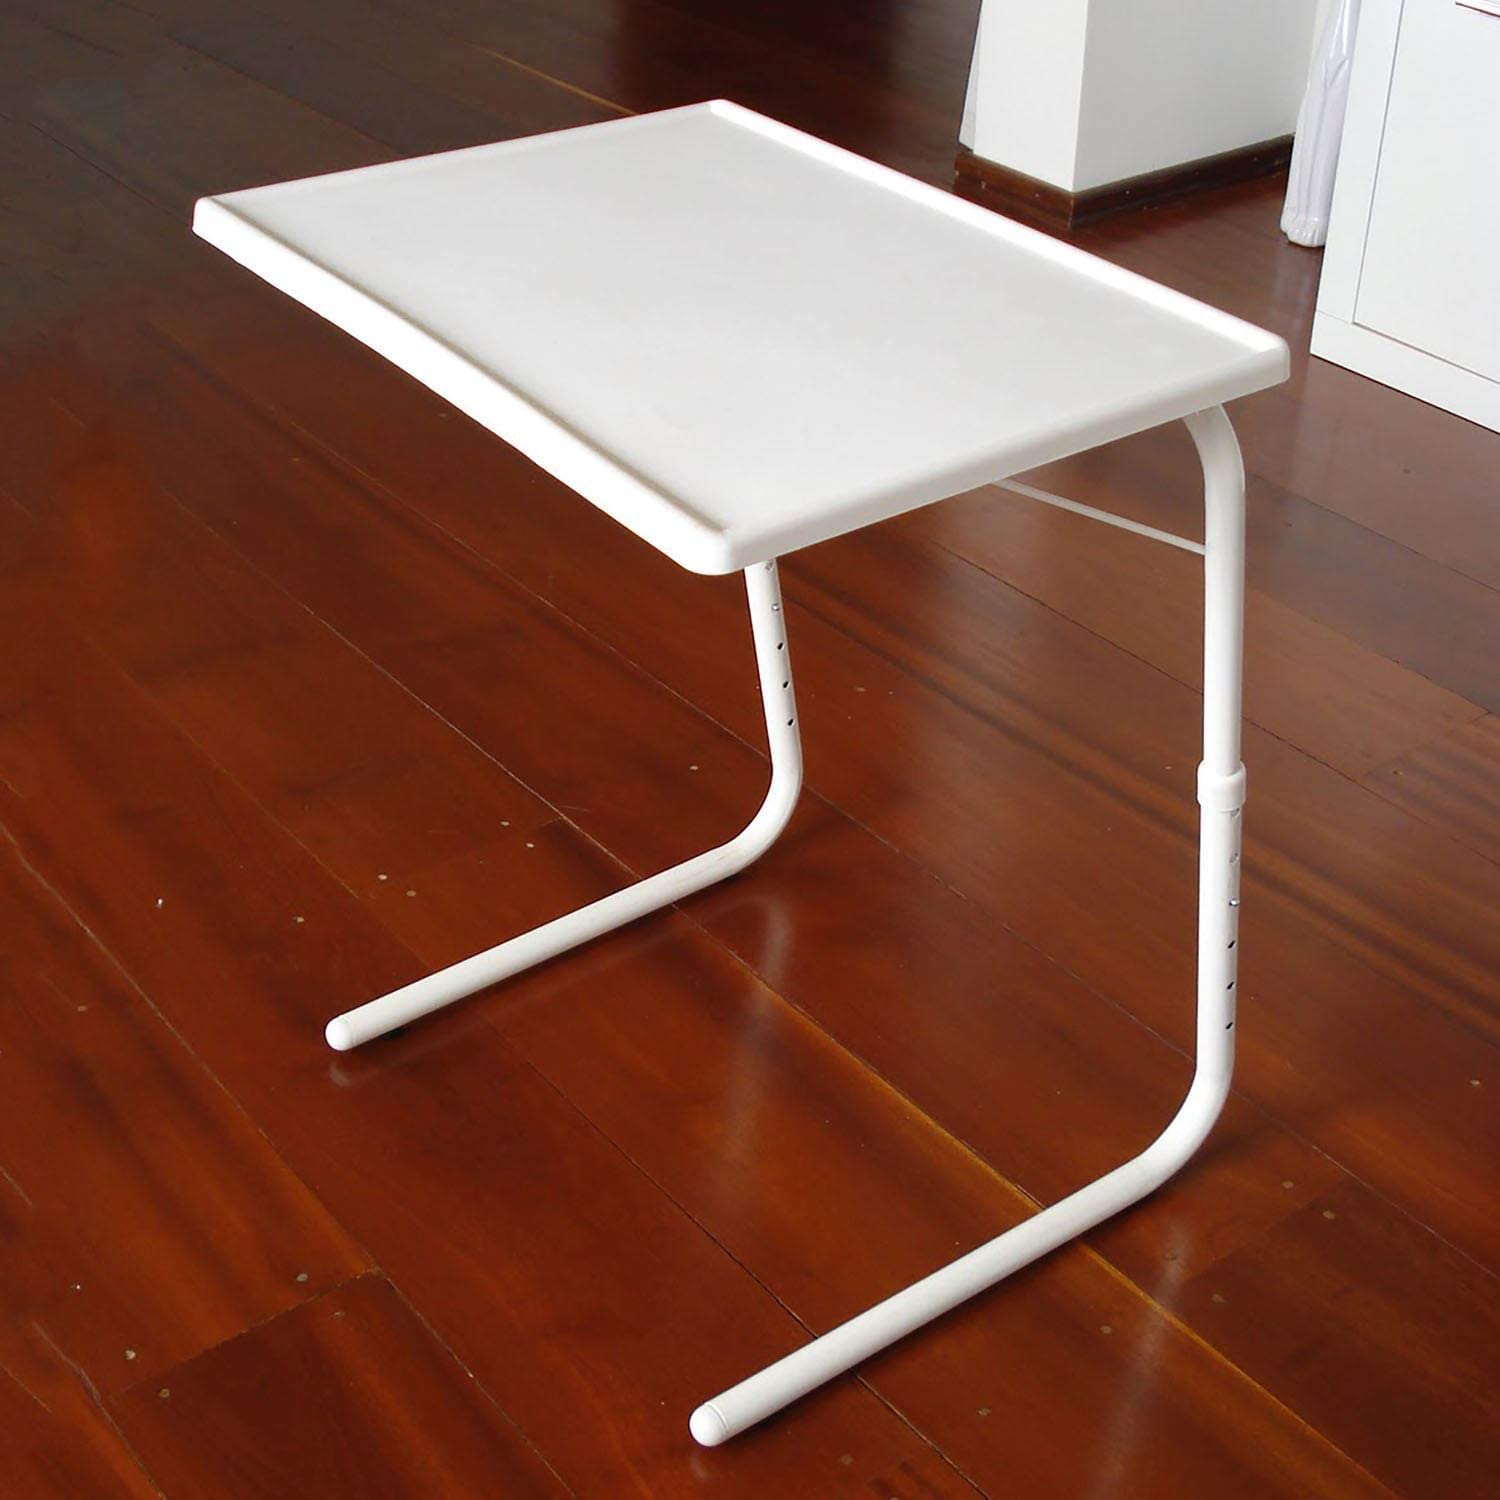 Easel drawing Laptop stand Adjustable to 6 different heights and 3 different angles Greenfields Portable Adjustable Folding Table Lounge Bedroom